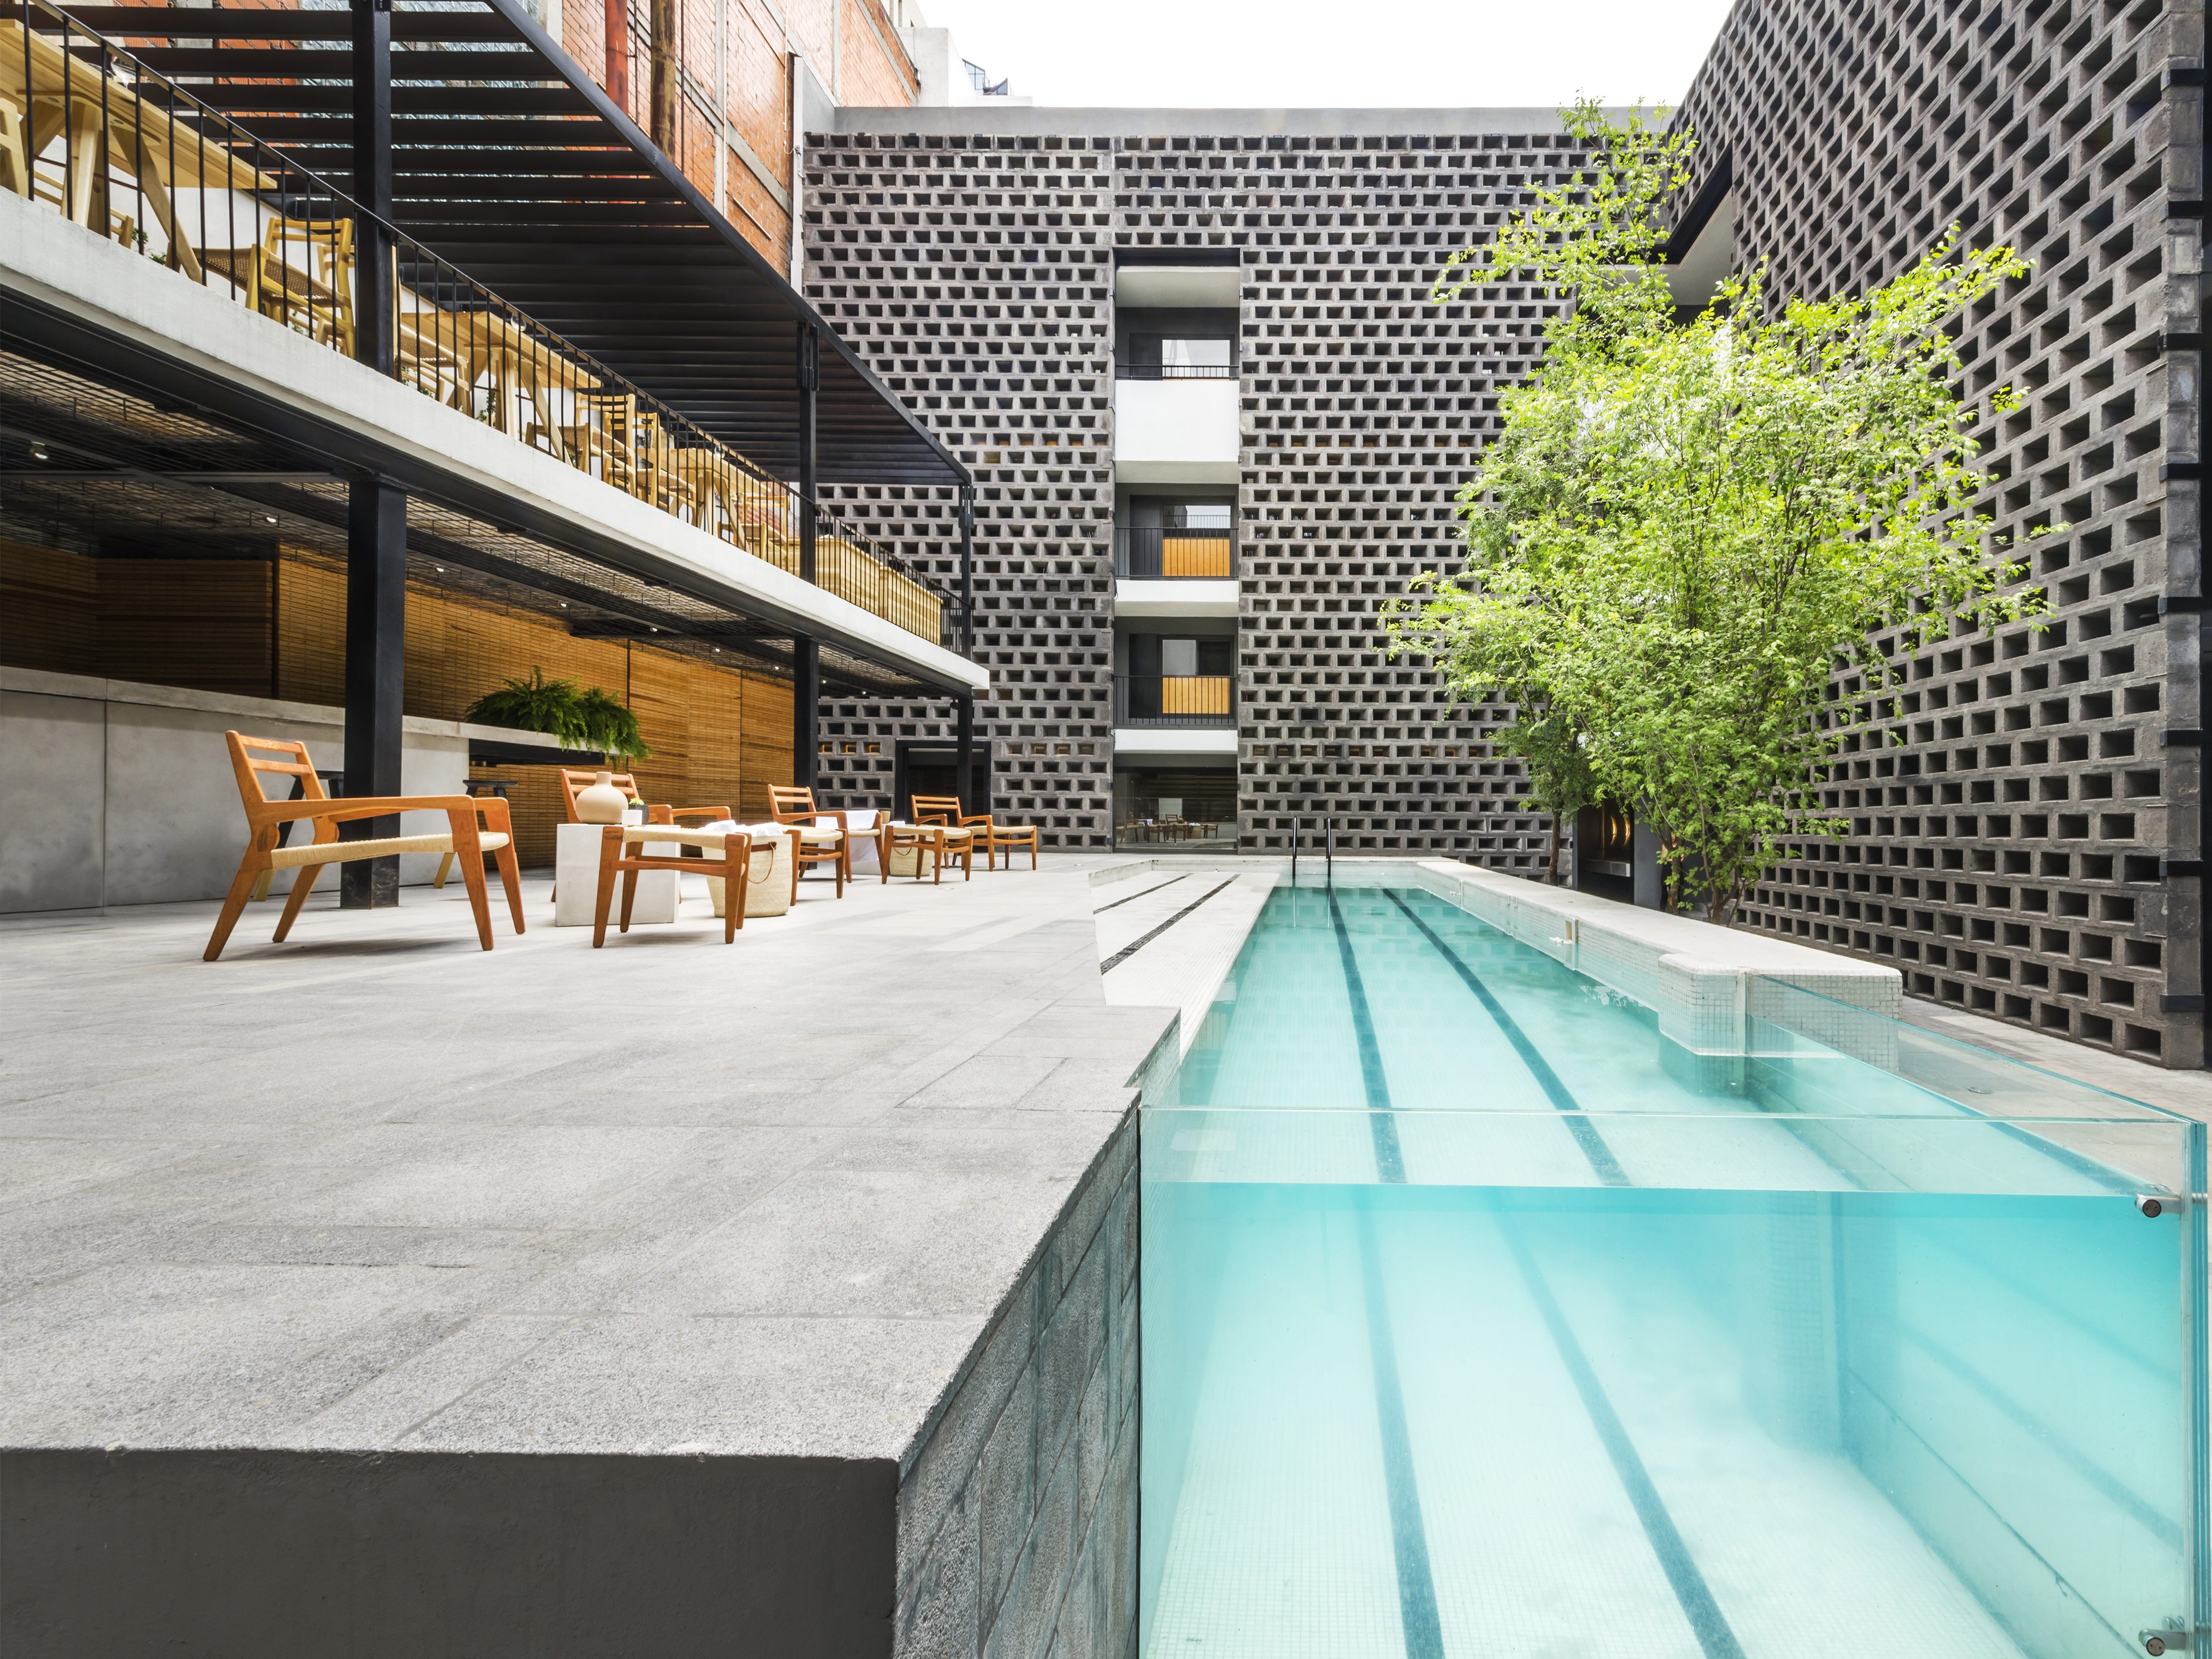 Originally dating to the 1970s, Hotel Carlota was revamped by JSa Arquitectura and completed in 2015. As part of the renovation, a pool became the focal point of the courtyard, and its modernized, streamlined design makes a dramatic statement.